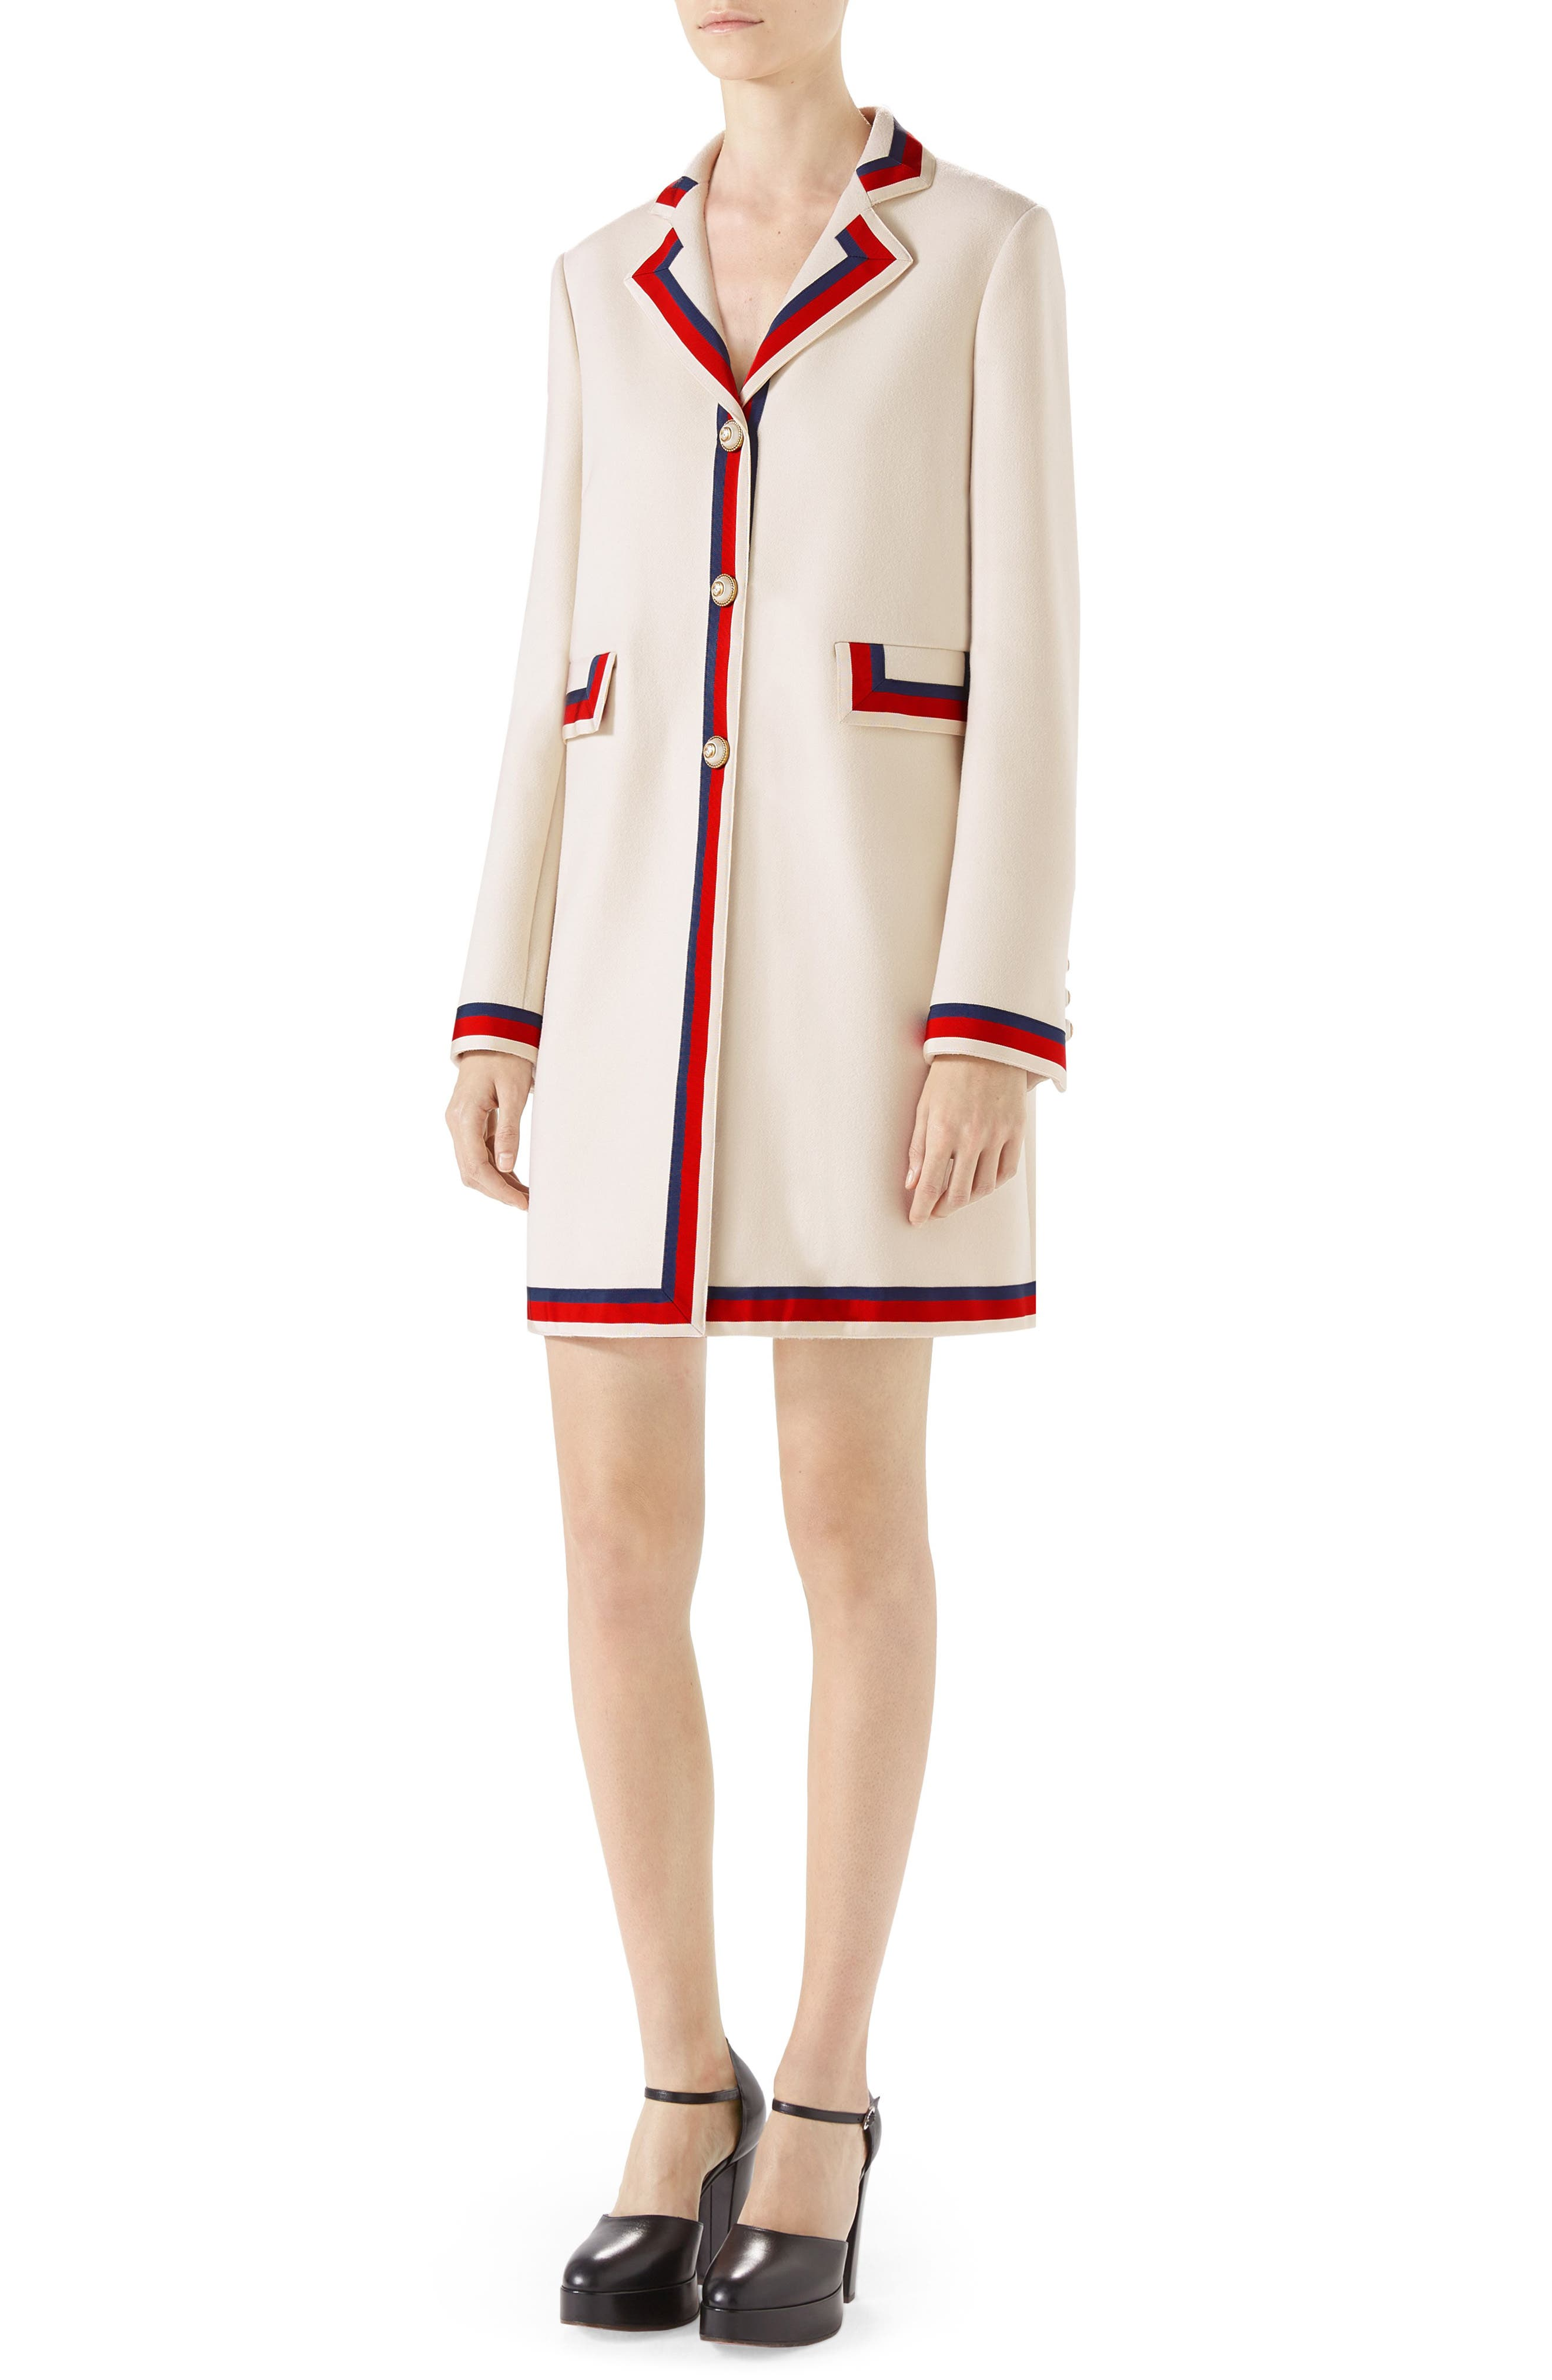 Gucci Ribbon Trim Wool Coat